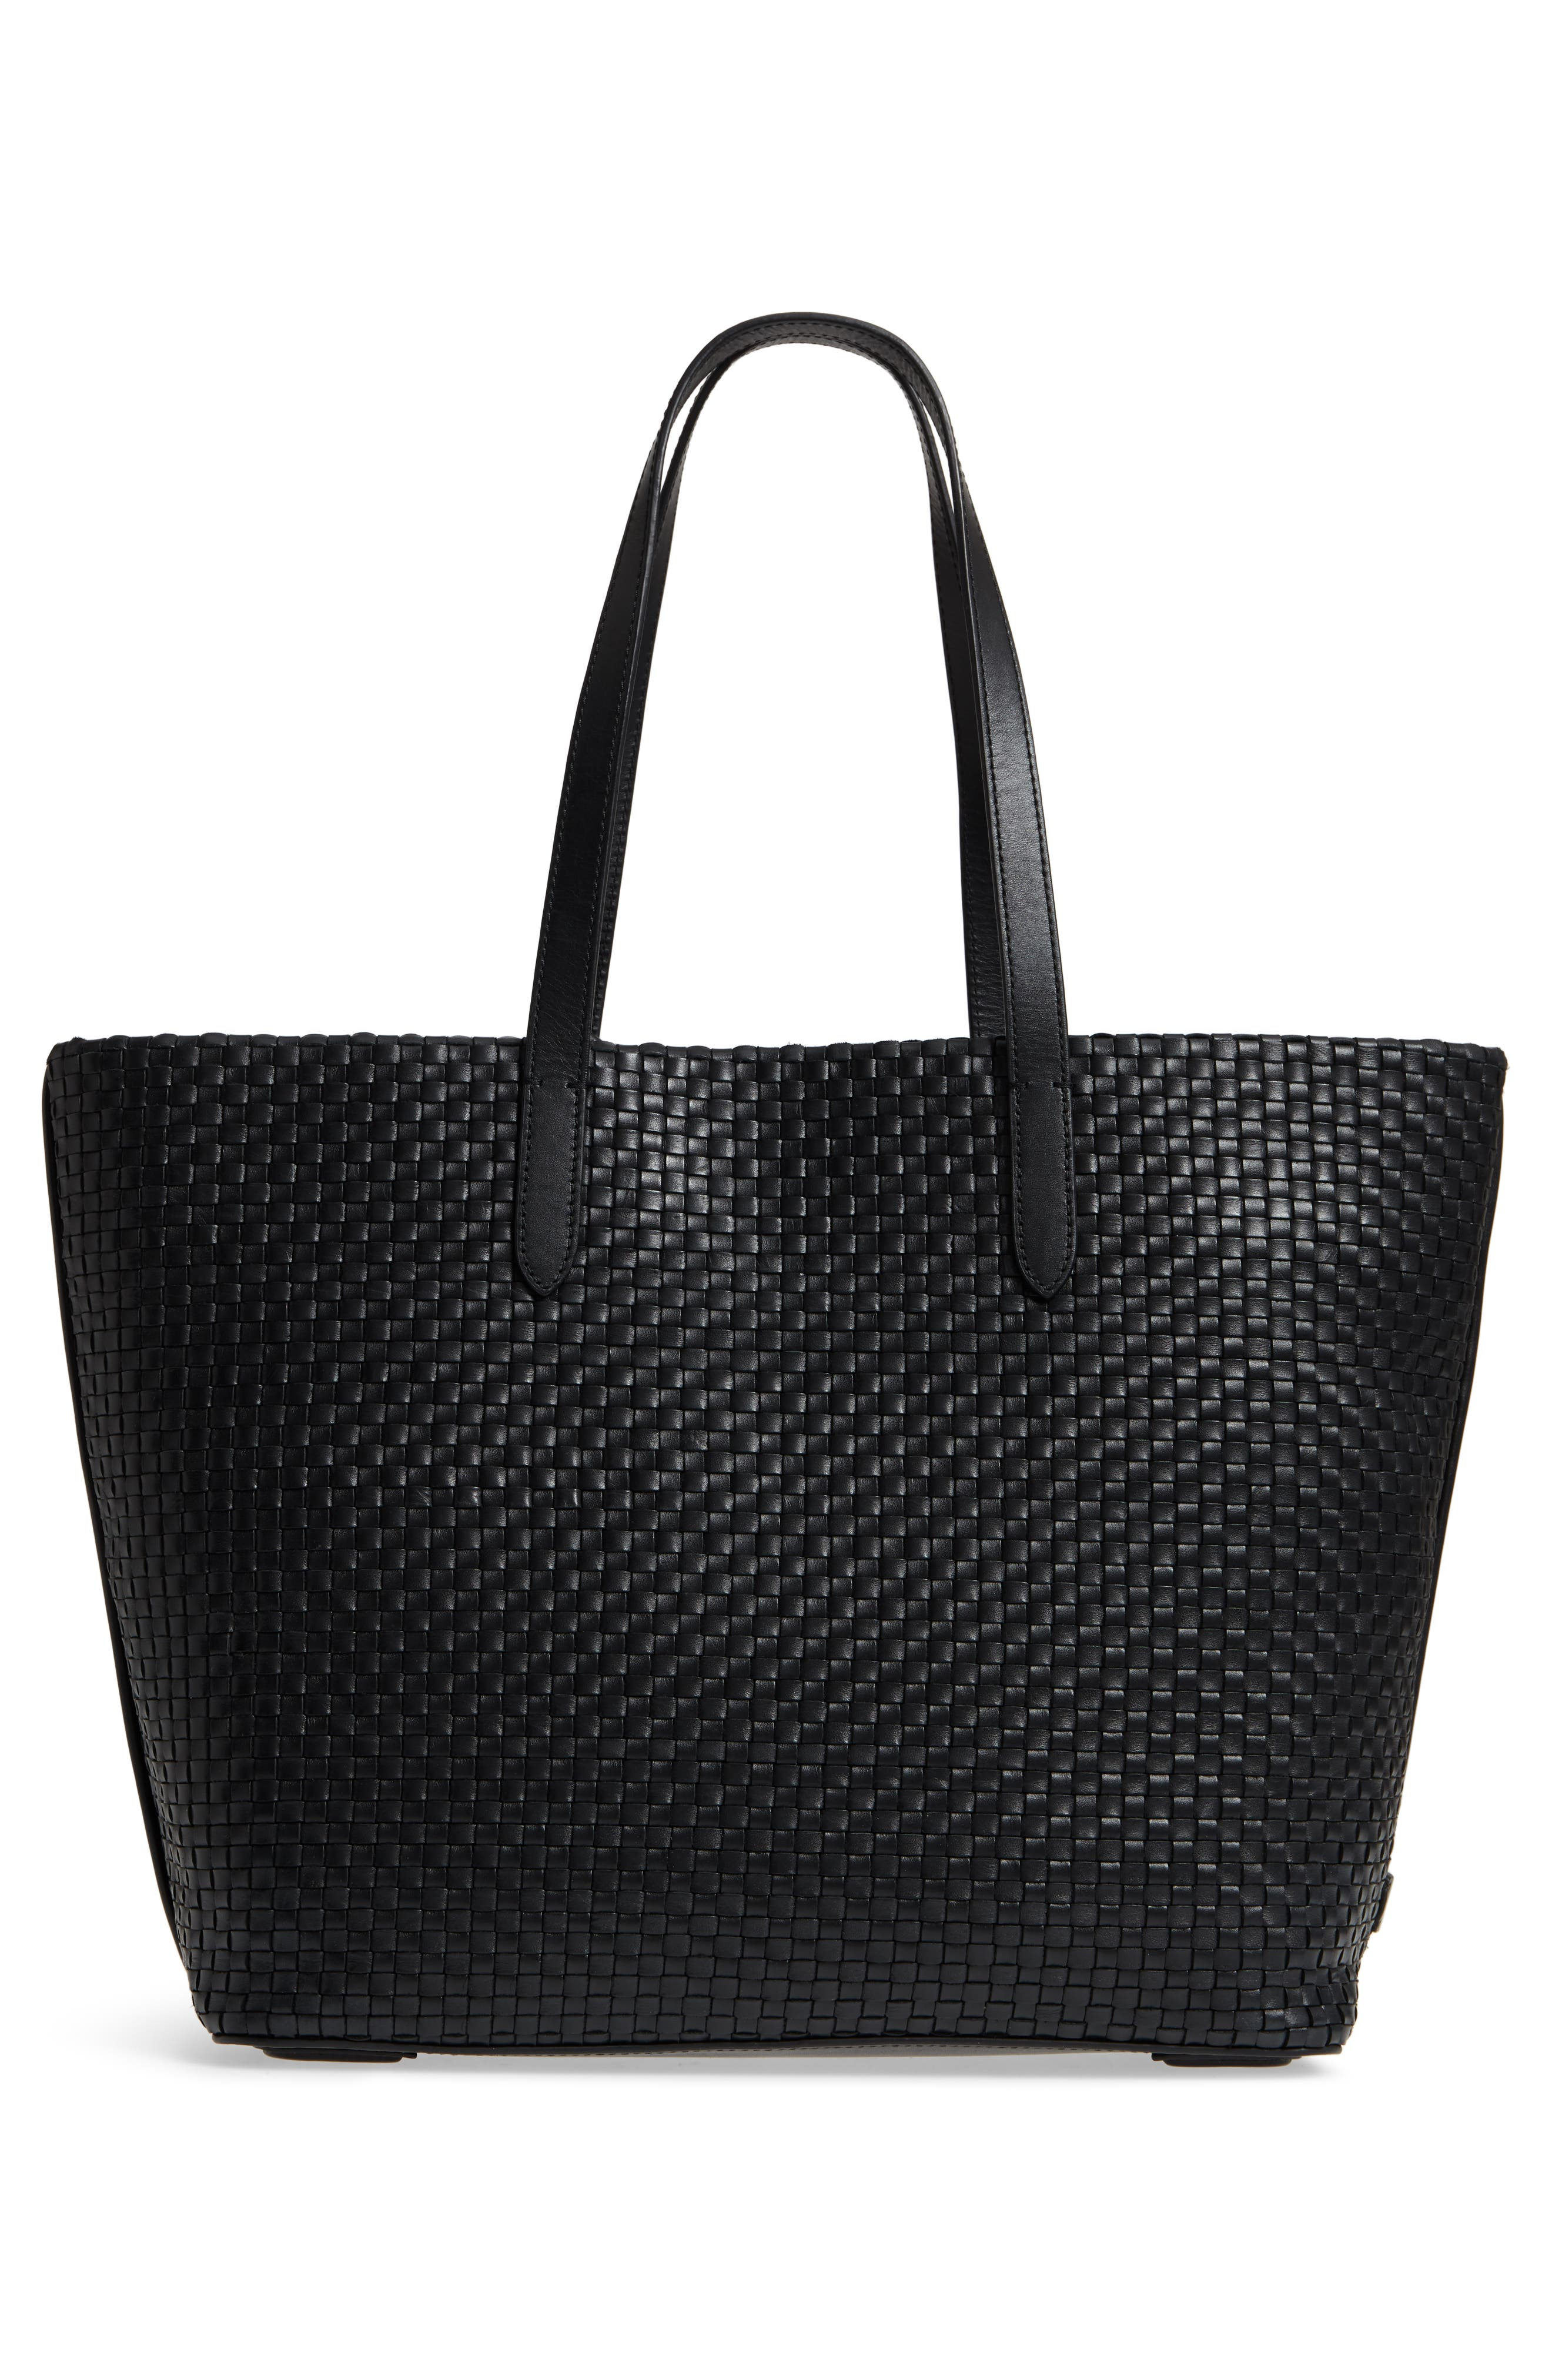 Payson RFID Woven Leather Tote,                             Alternate thumbnail 4, color,                             Black